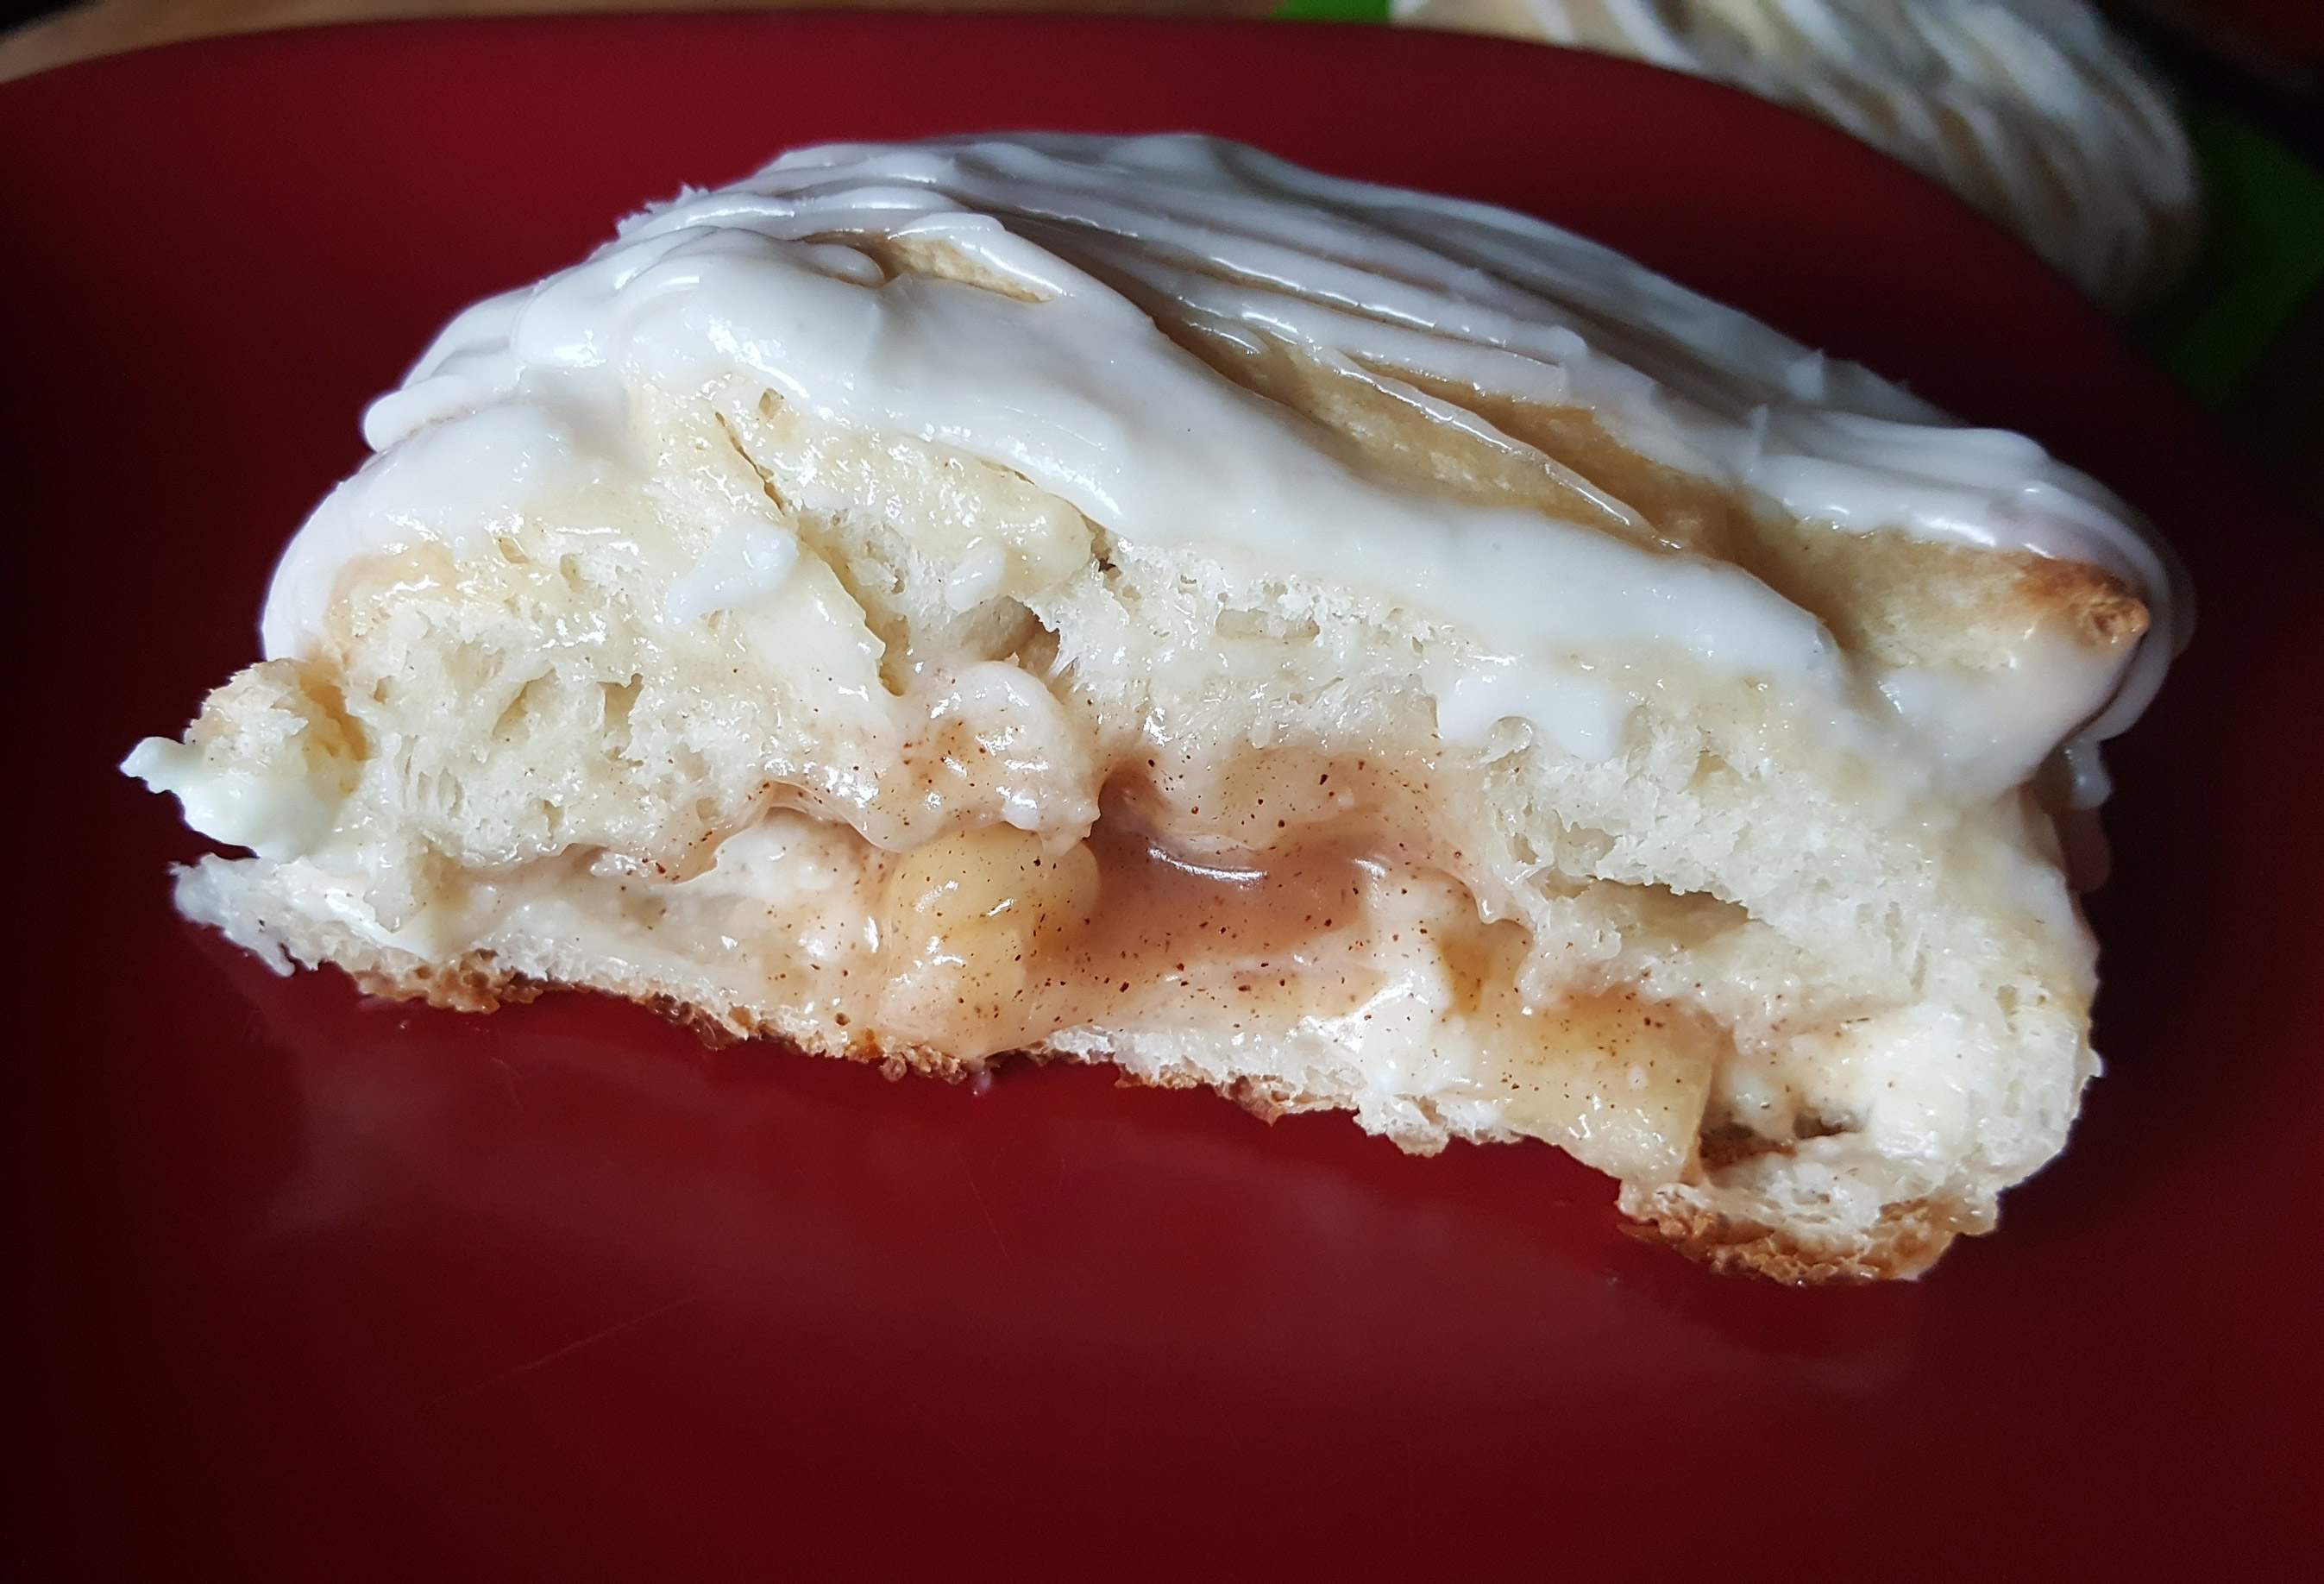 Braided Apple Strudel